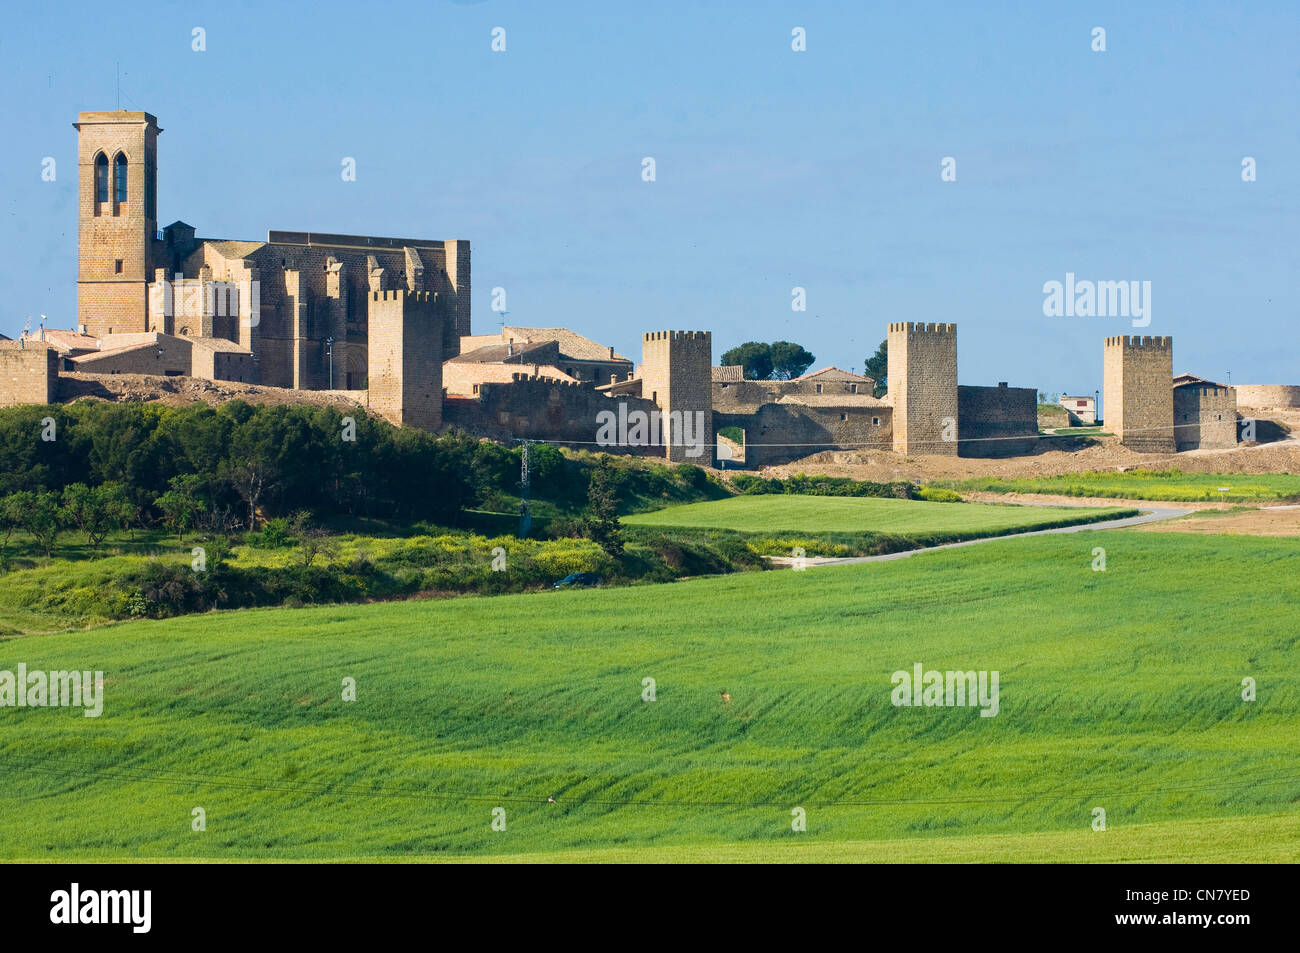 Spain, Navarra, Artajona, the fortress, dated 11th century - Stock Image